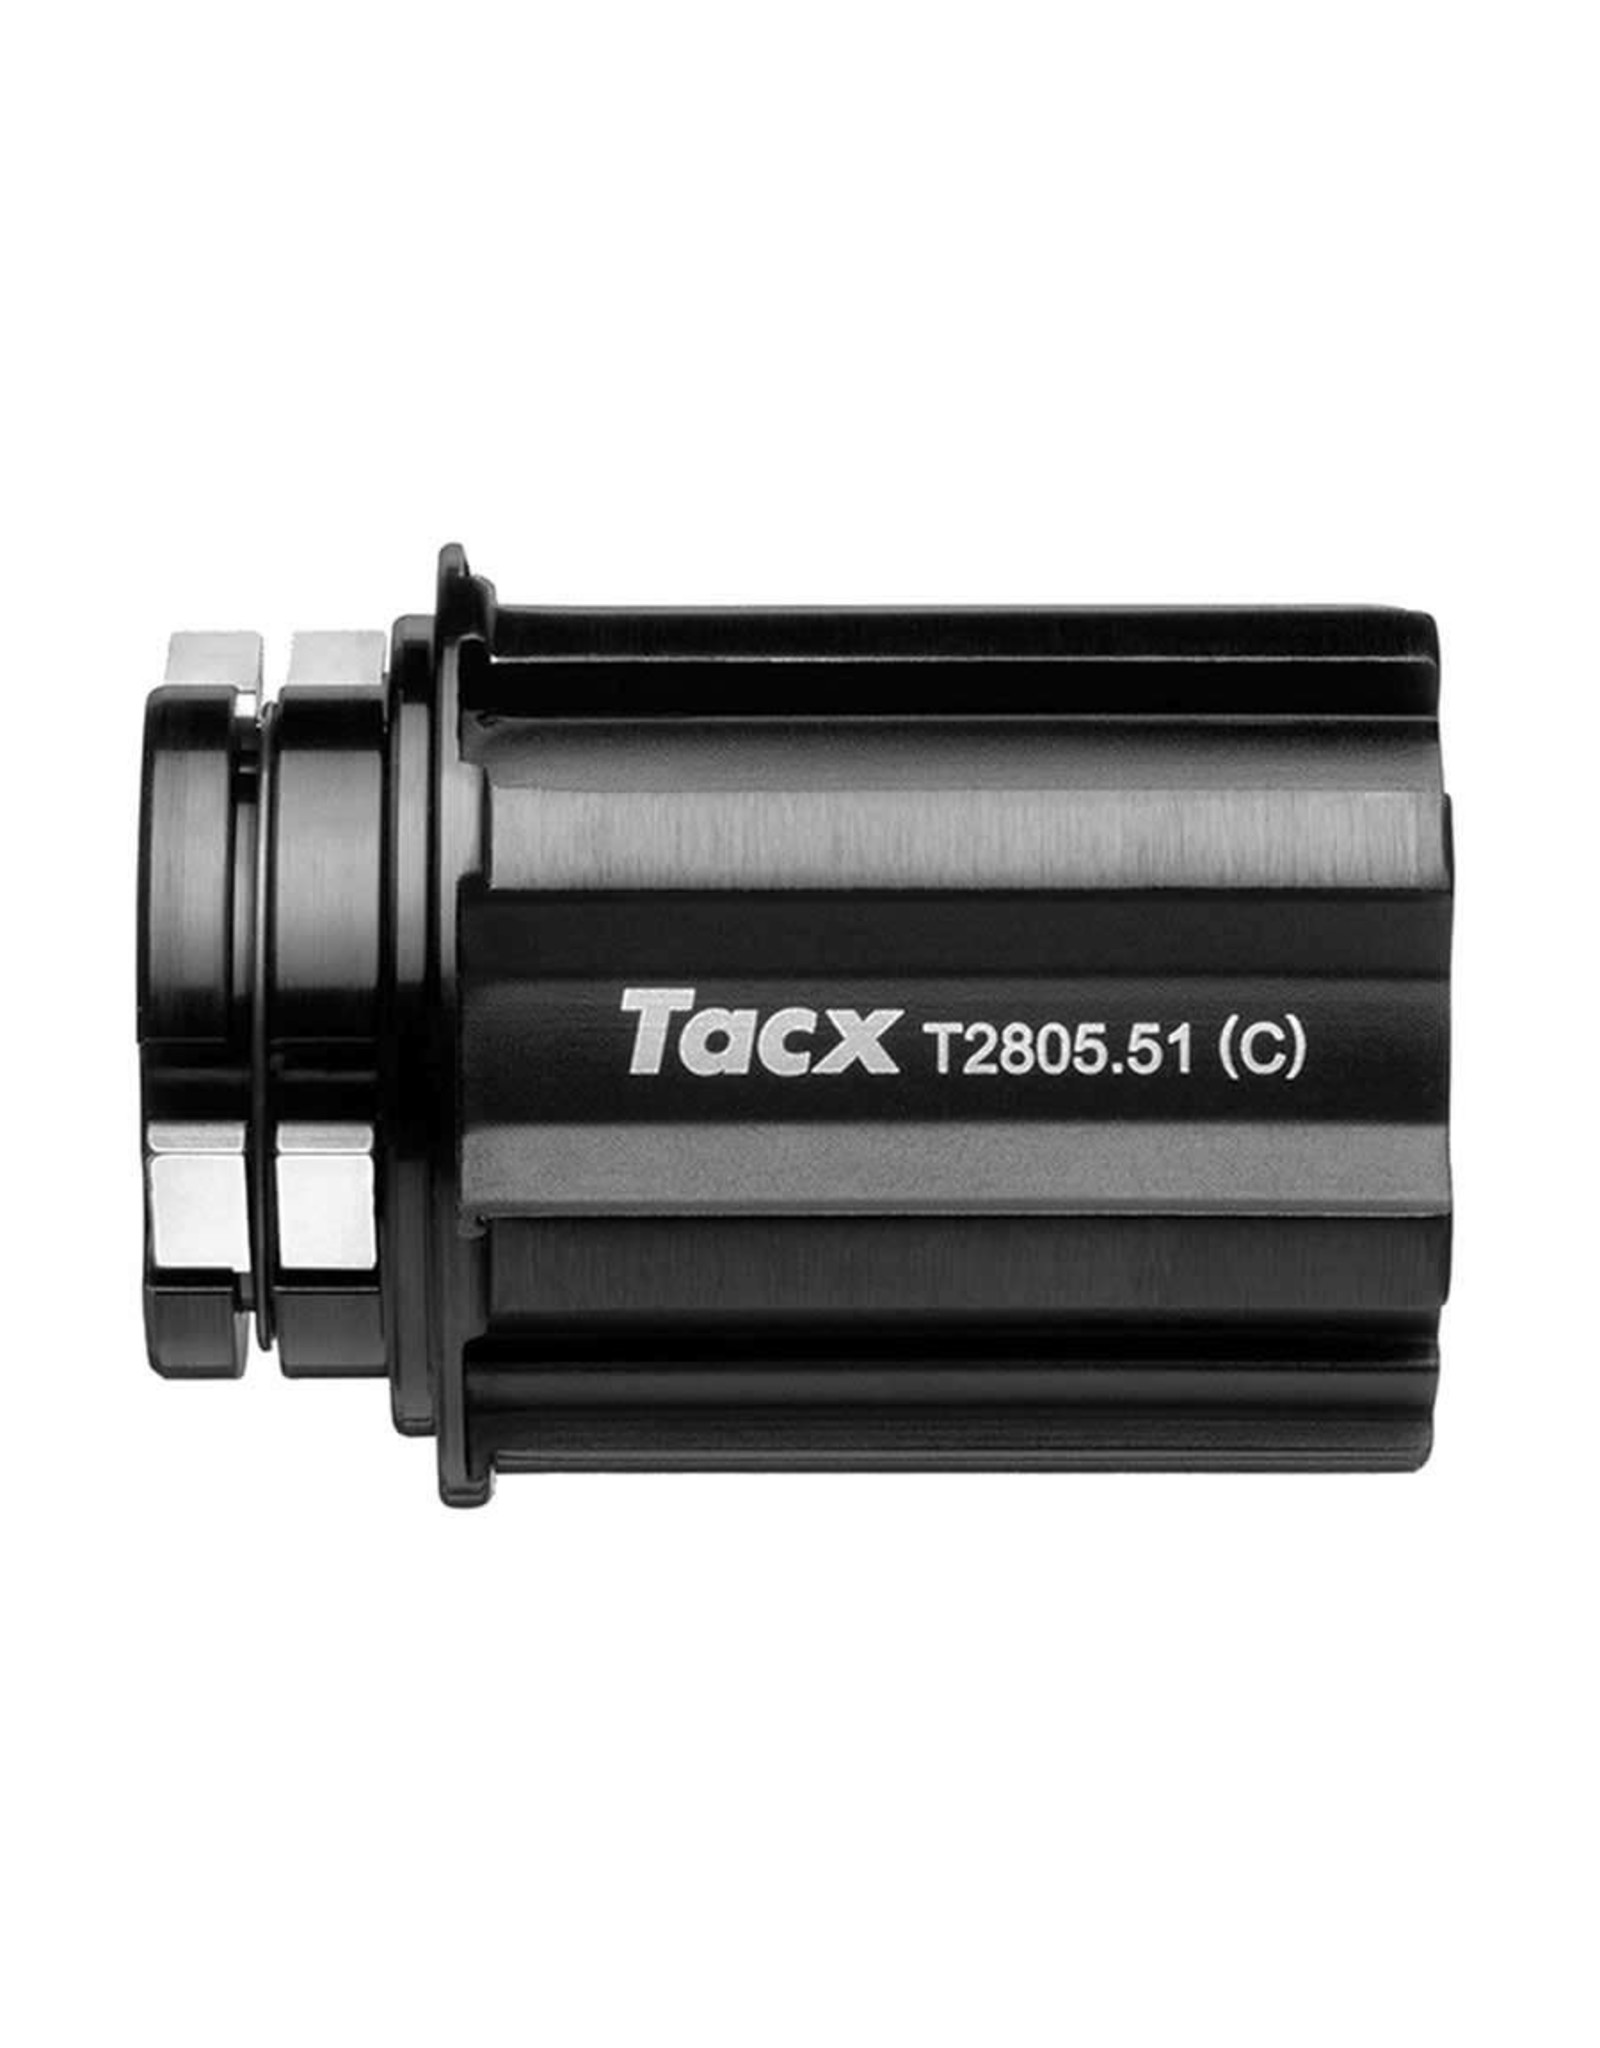 Tacx Tacx, Campagnolo Direct Drive Freehub Body